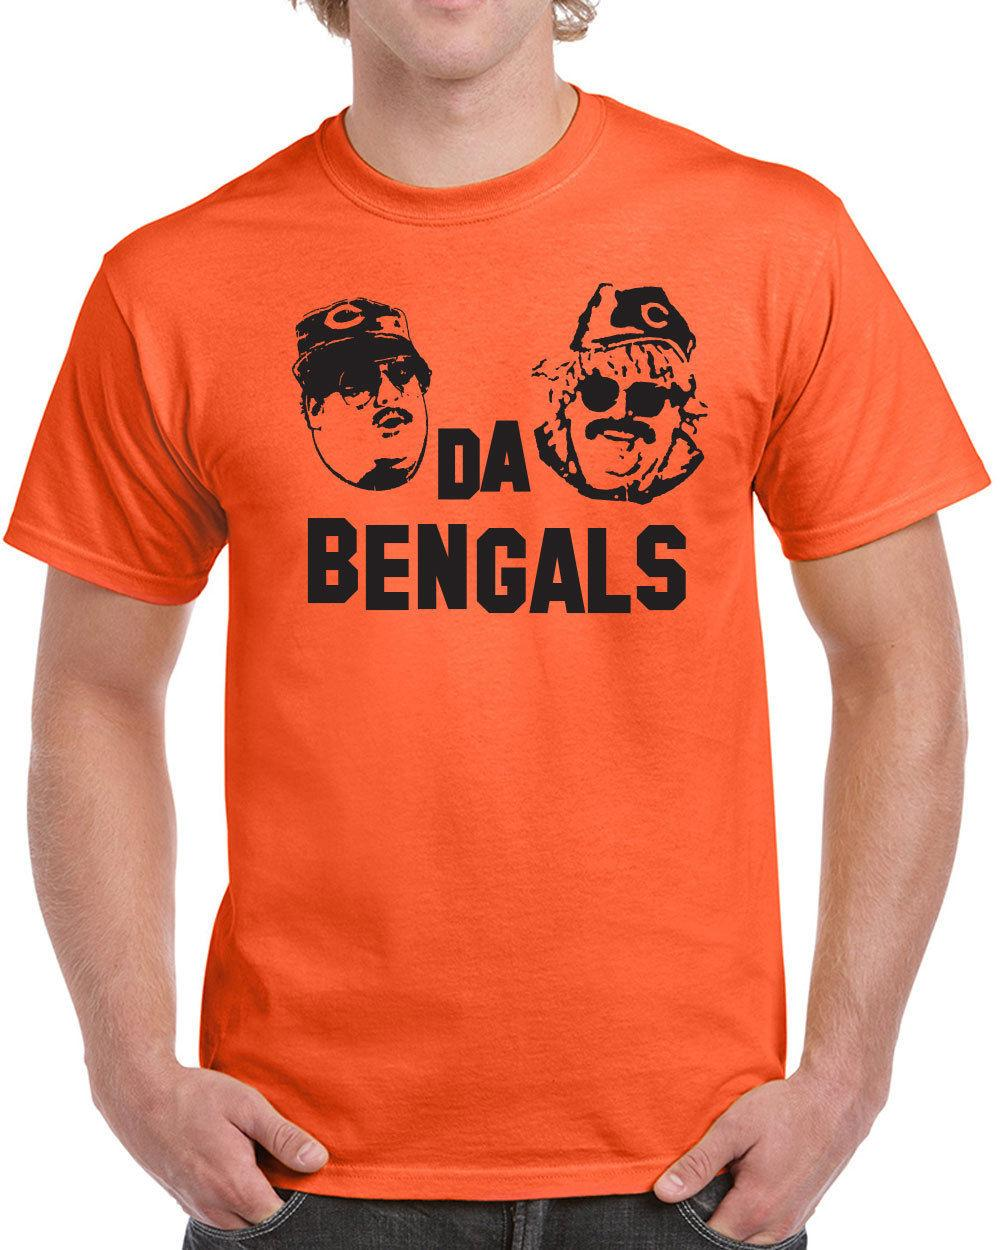 cf7f5abf Details Zu 311 Da Bengals Mens T Shirt Funny Sports Cincy Jungle Ohio Cool  New Funny Unisex Casual Tee Gift Tea Shirts Fun Tshirts From Trendsspace,  ...